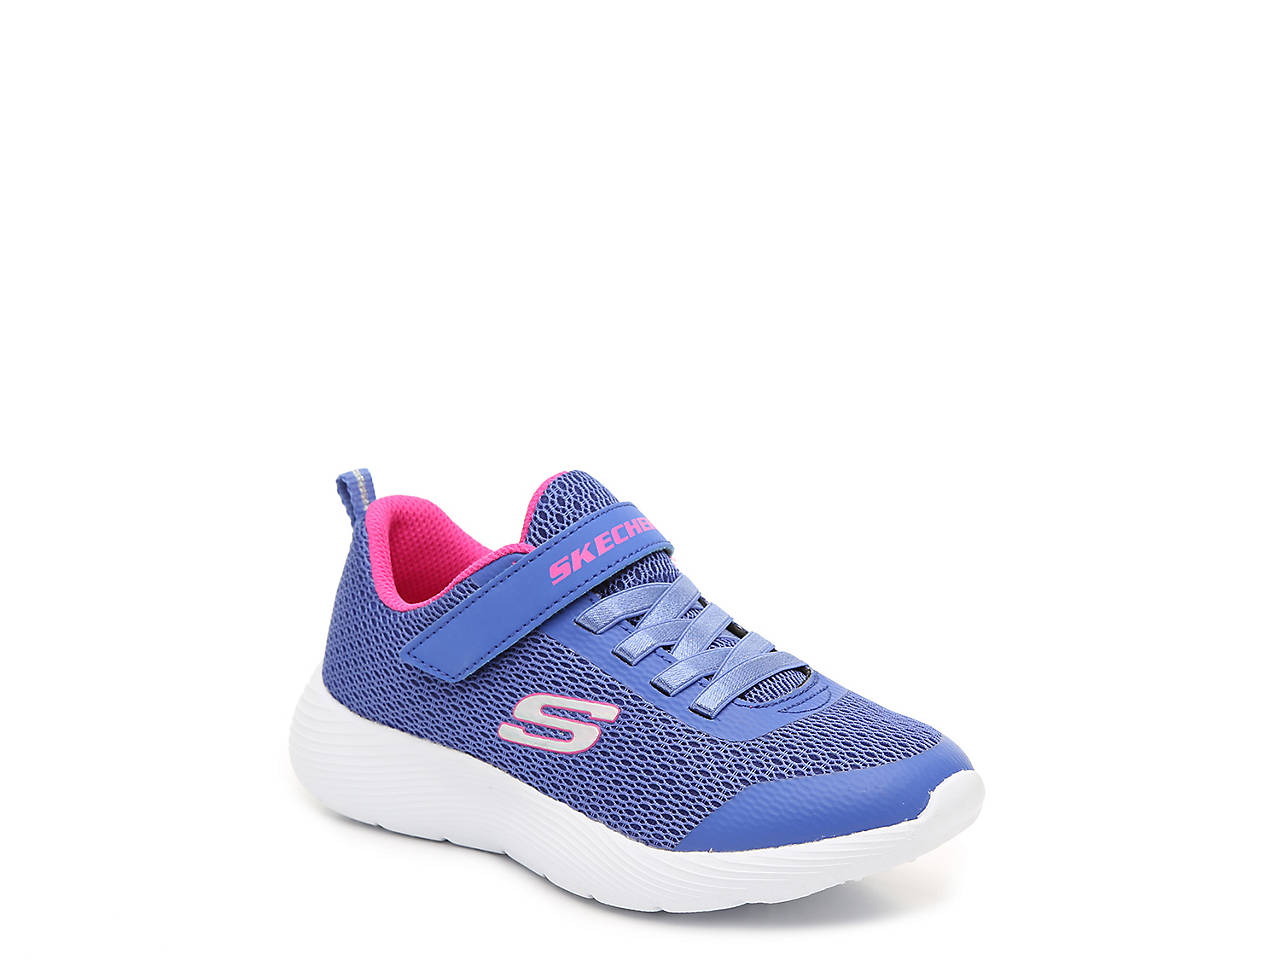 26e0443c278 Skechers Dyna-Lite Toddler   Youth Sneaker Kids Shoes